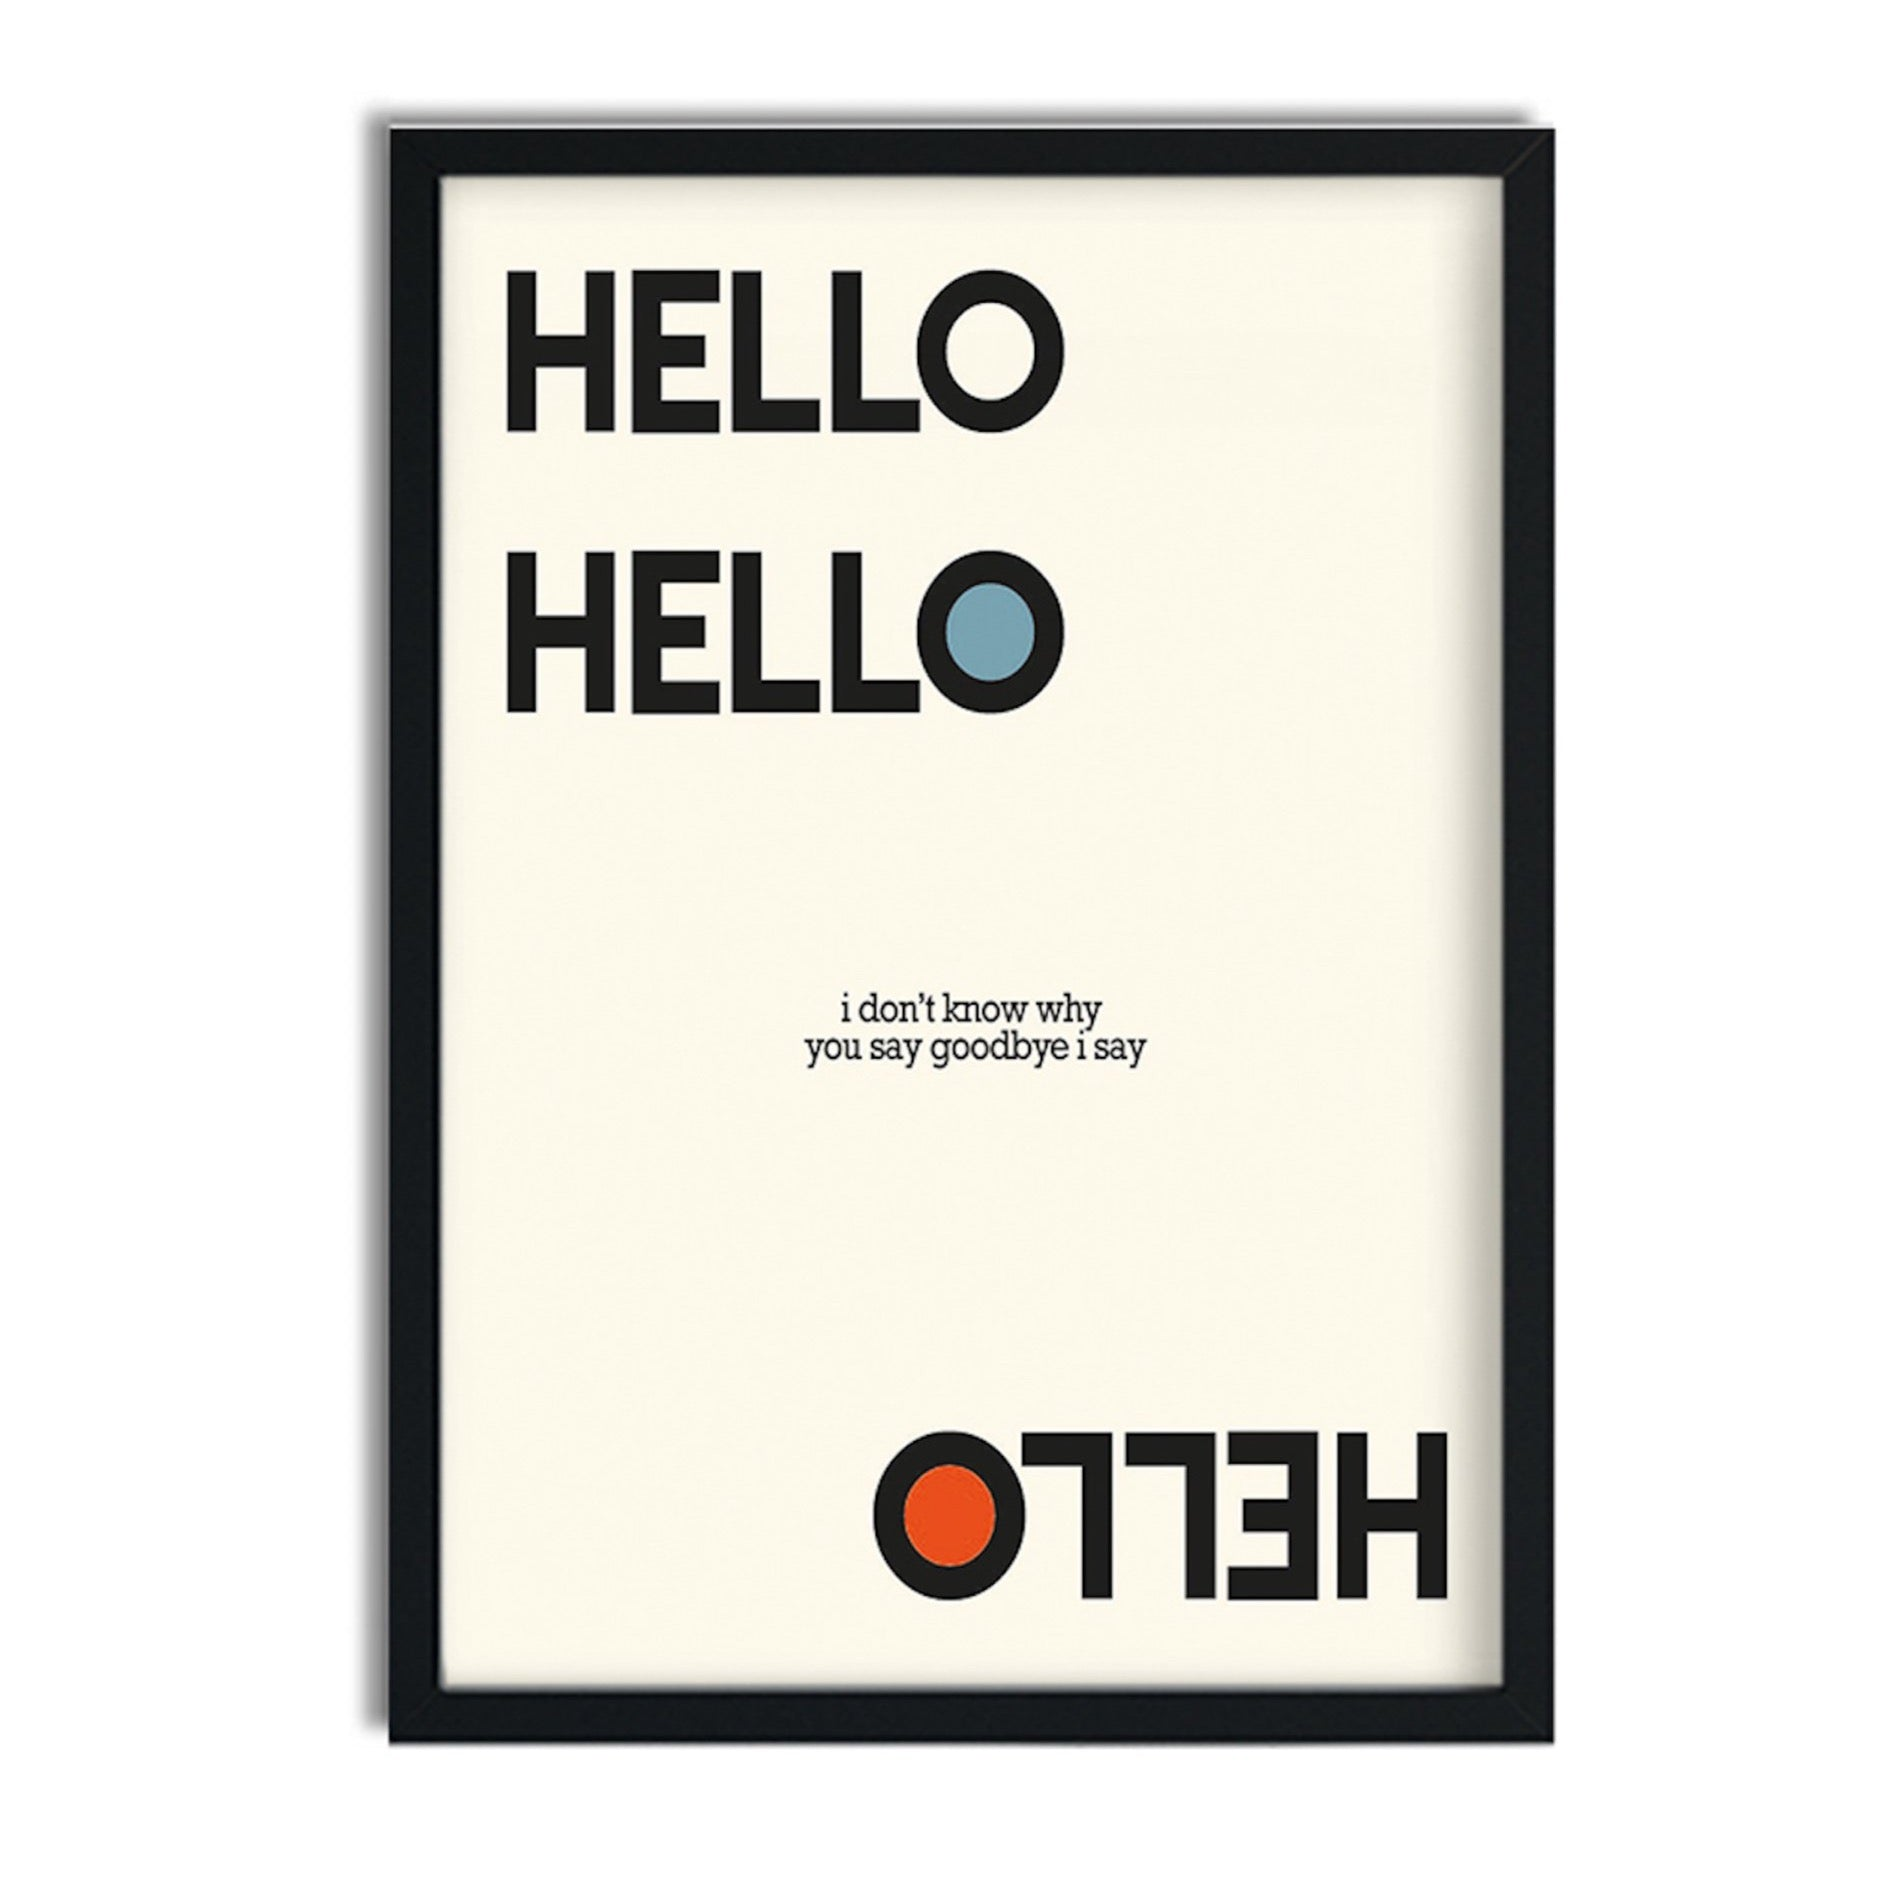 Hello Goodbye Beatles retro art print